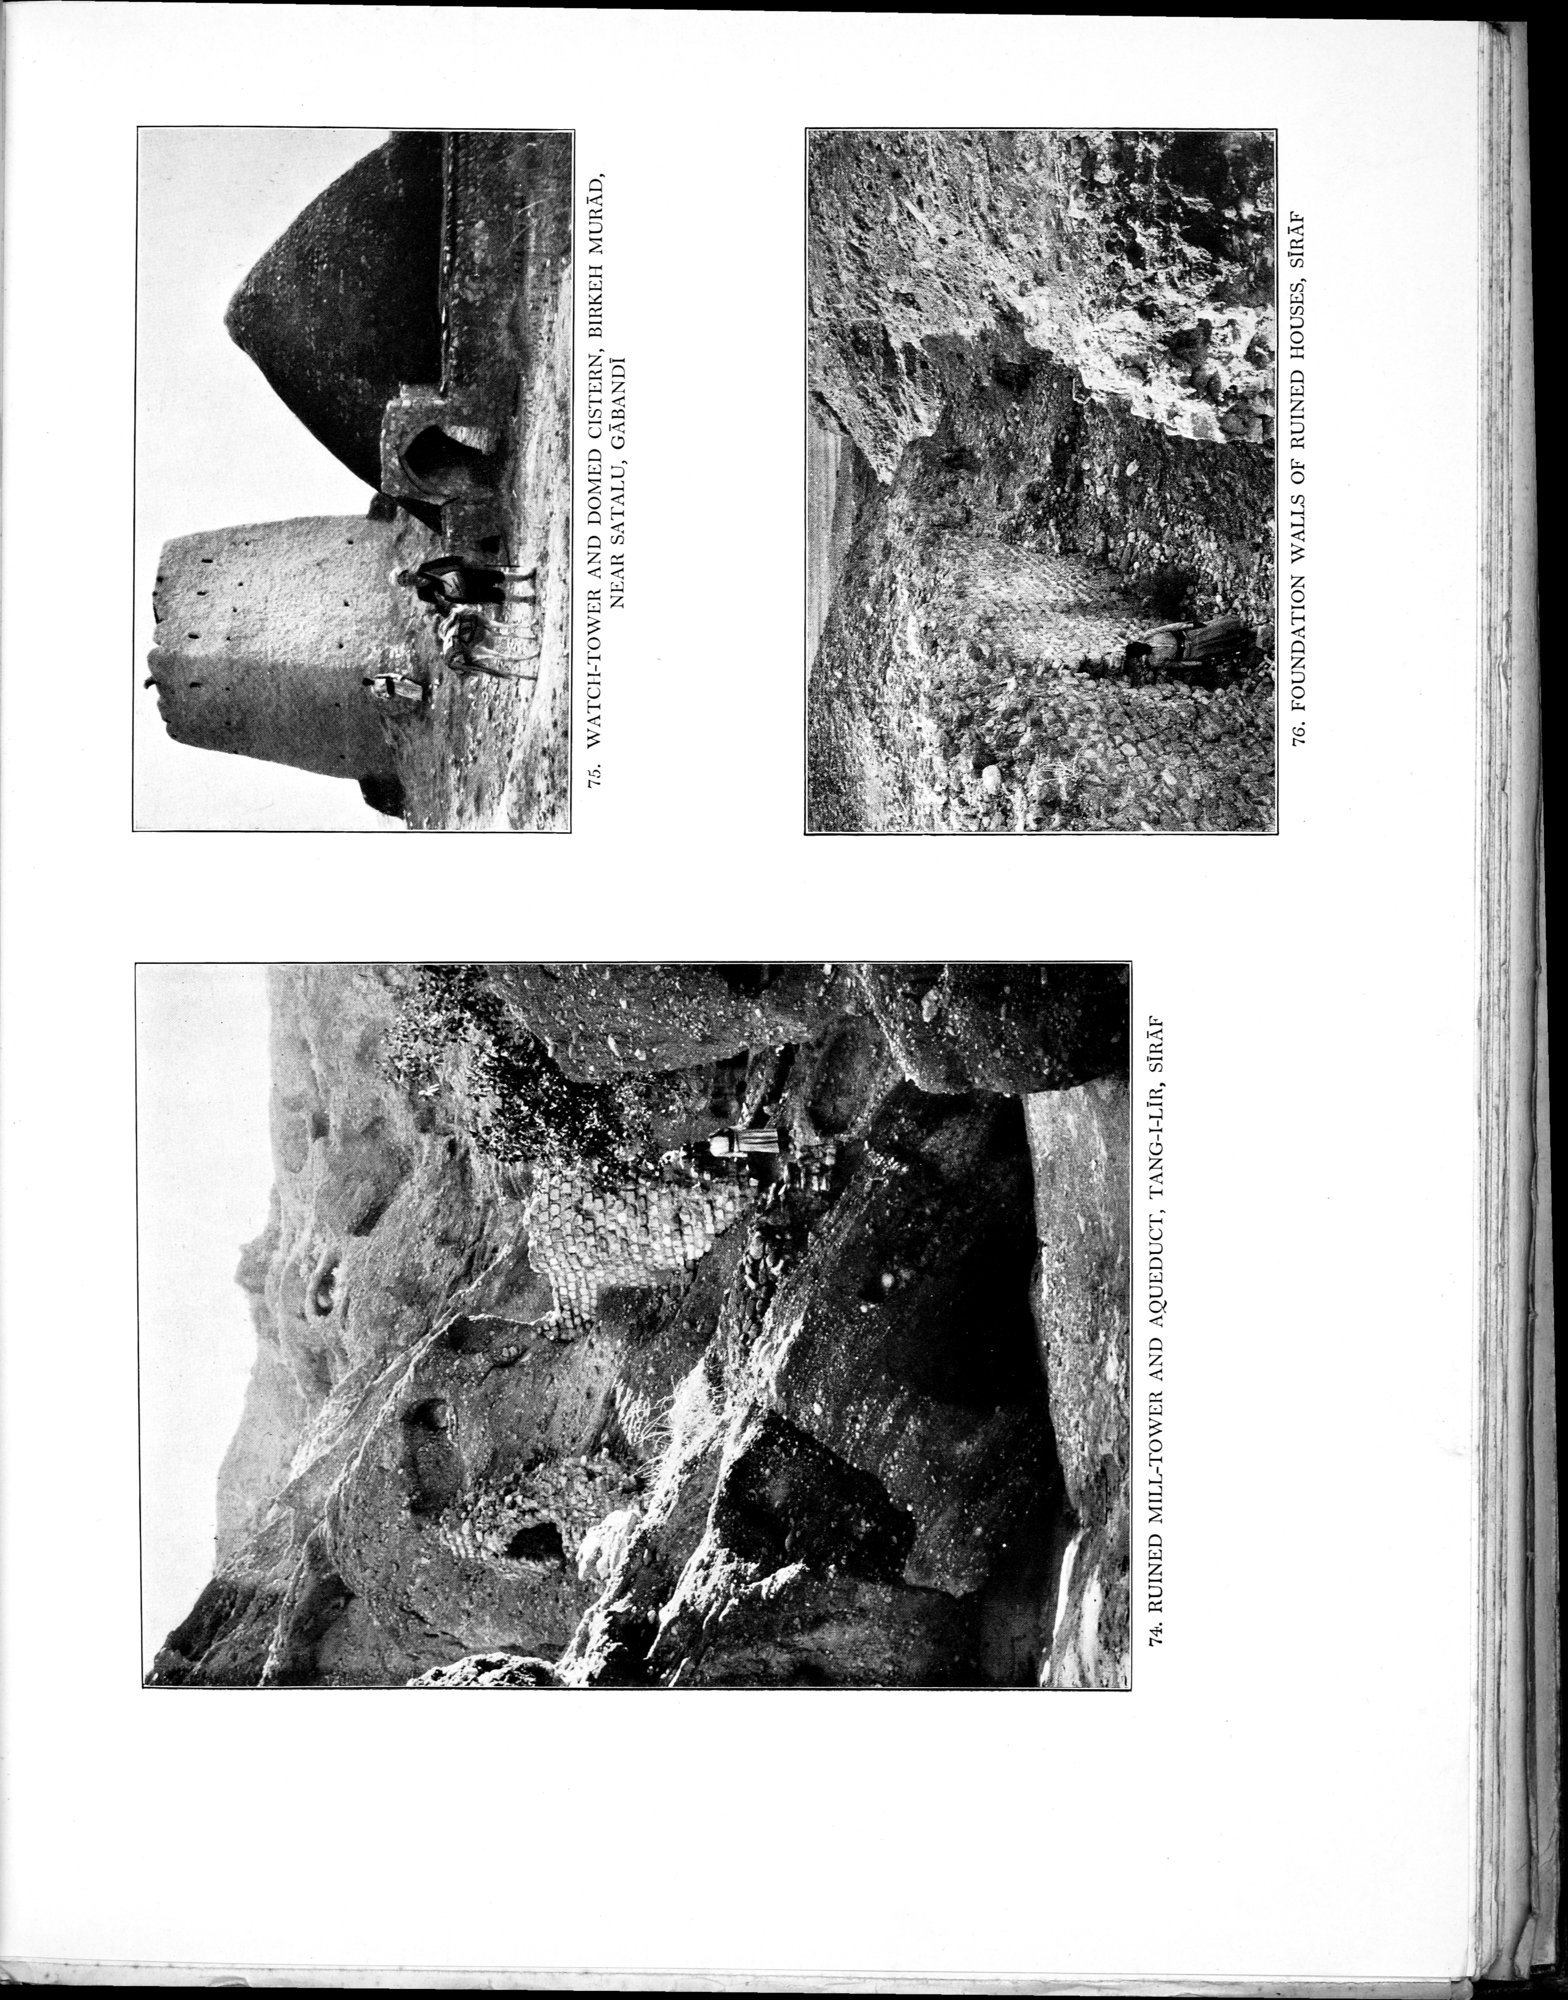 Archaeological Reconnaissances in North-Western India and South-Eastern Īrān : vol.1 / Page 289 (Grayscale High Resolution Image)